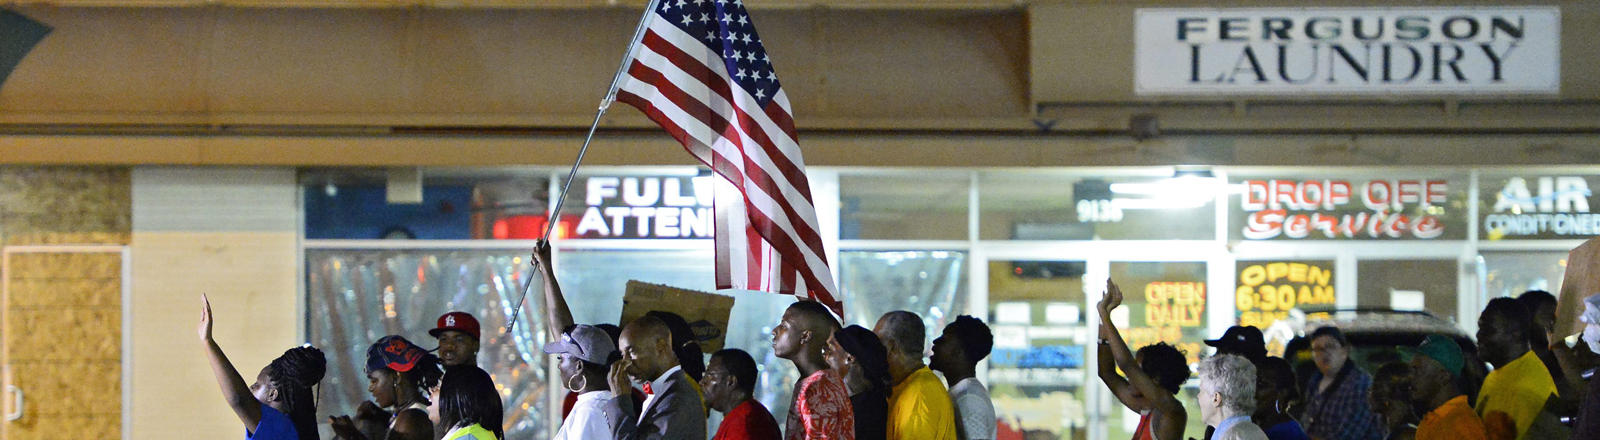 Protestmarsch in Ferguson.